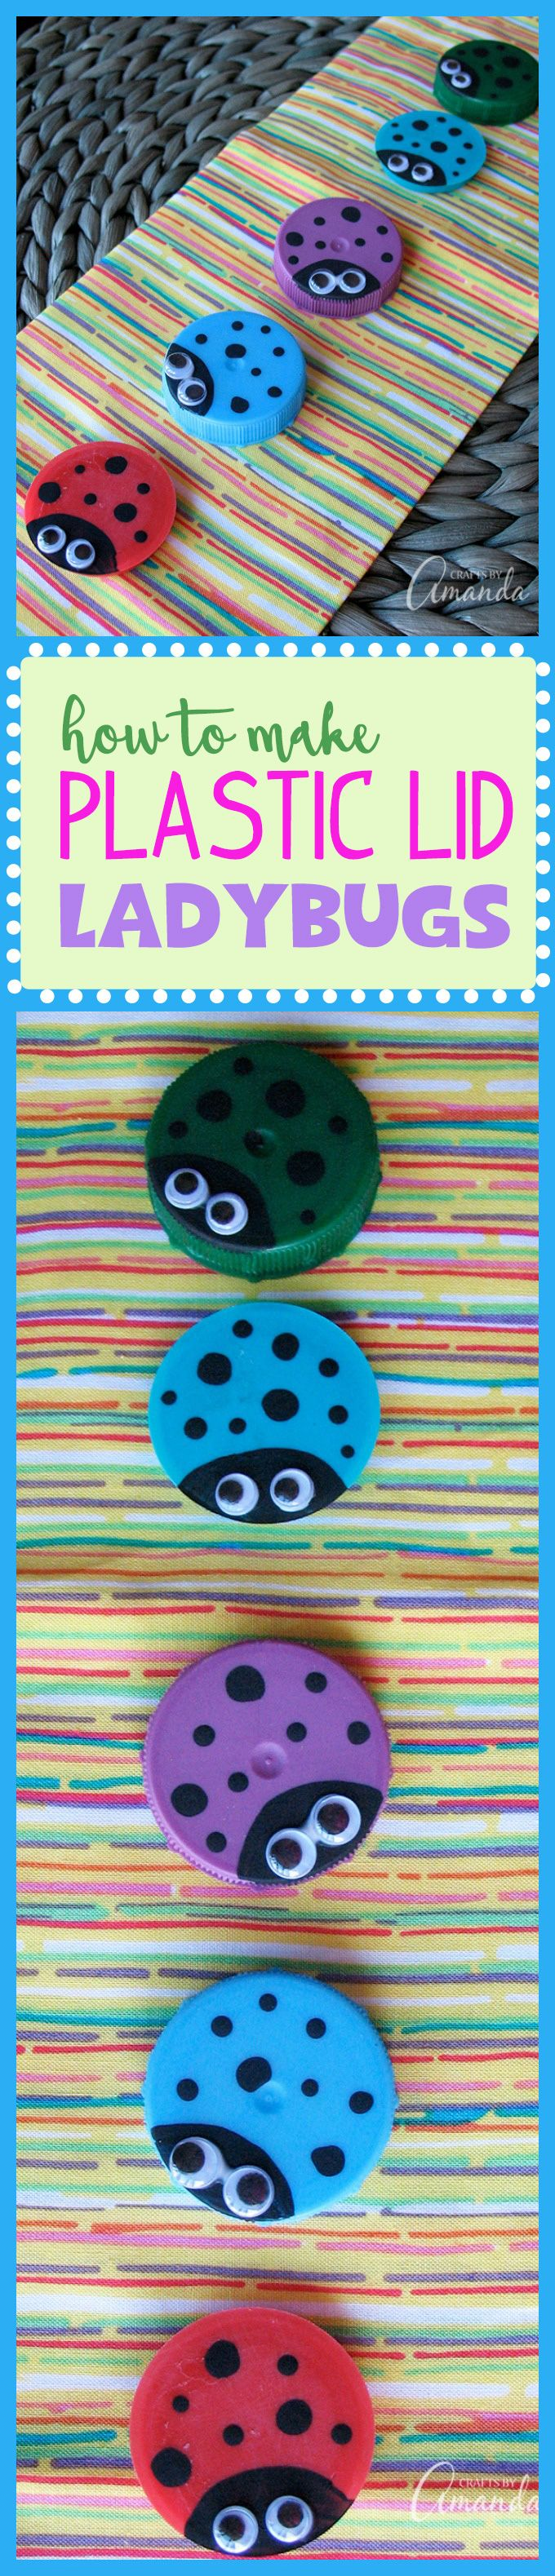 best Recycled Kids Crafts images on Pinterest